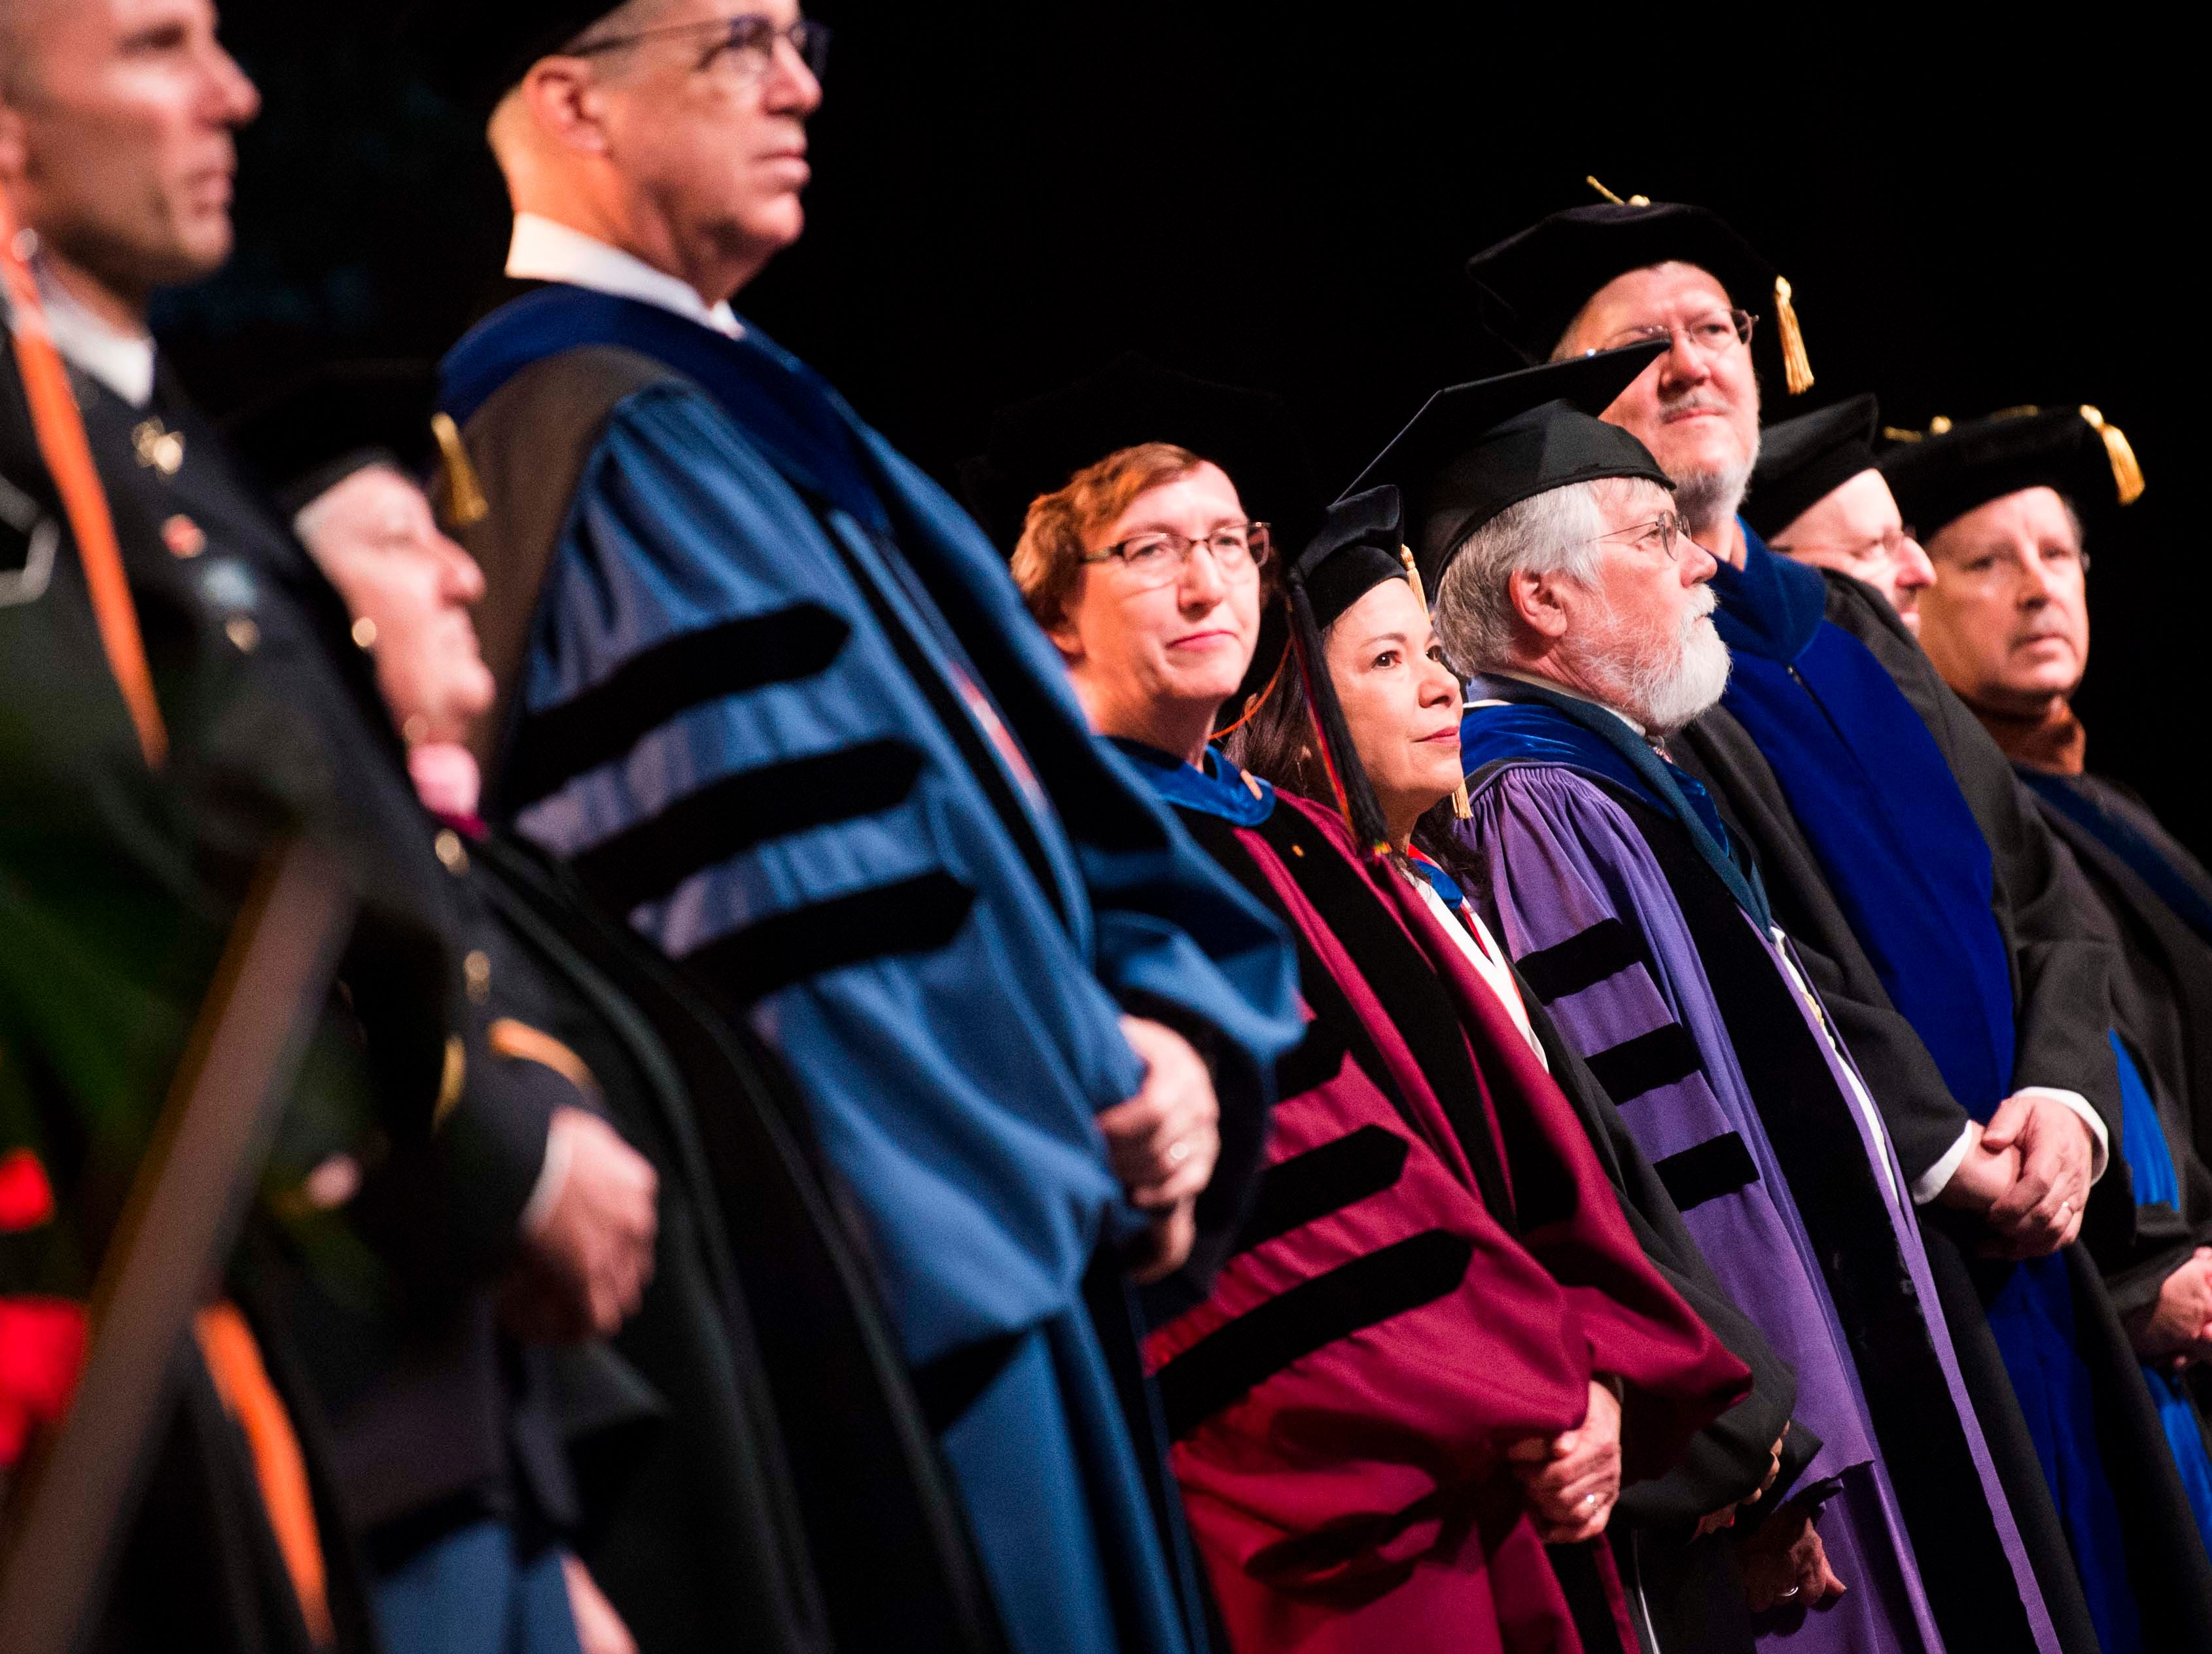 Faculty and staff stand during University of Tennessee's College of Arts and Sciences commencement in Thompson-Boling arena in Knoxville, Saturday, May 11, 2019.